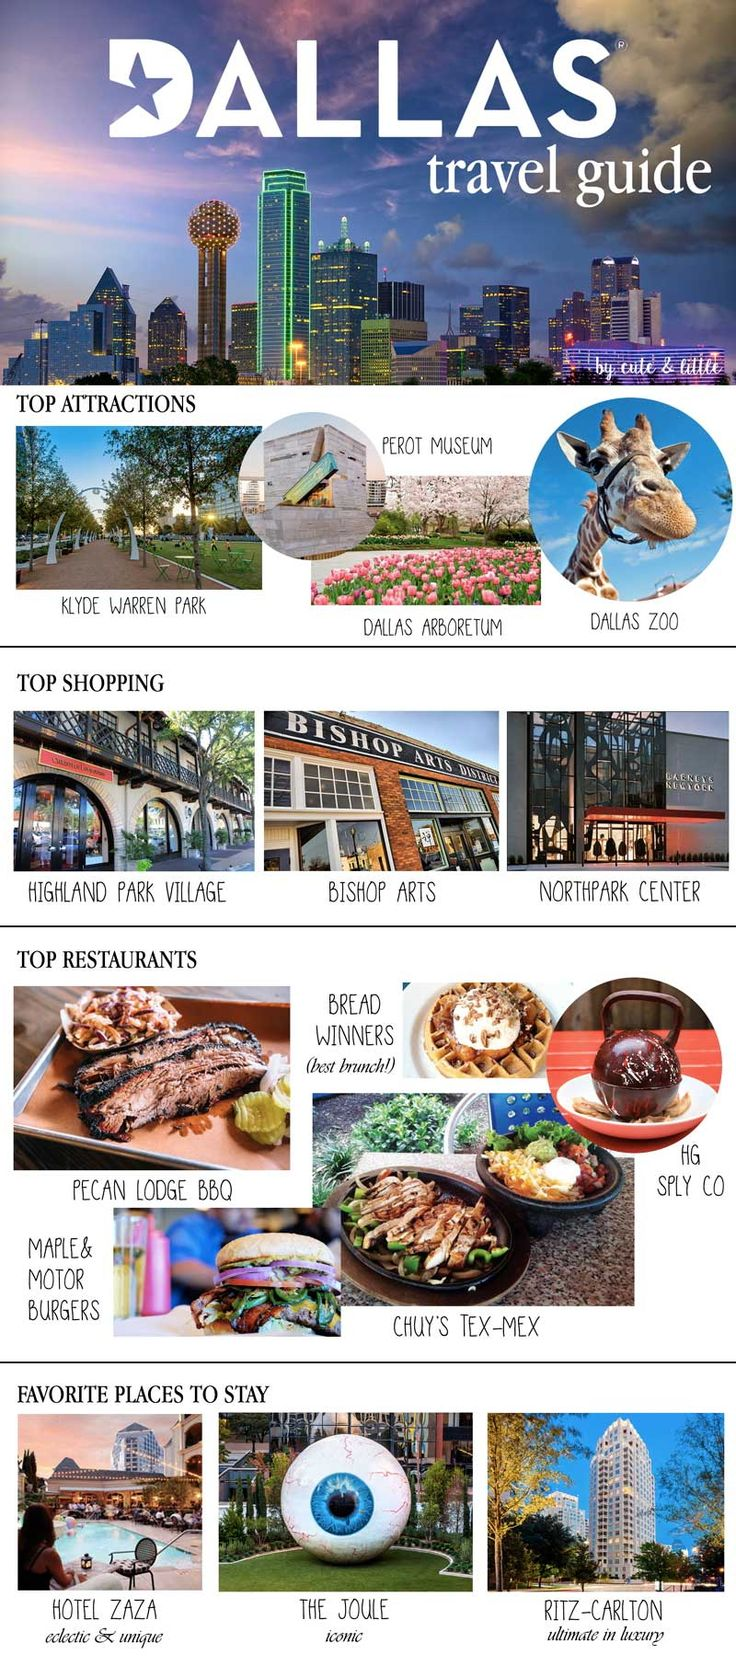 If you're stopping by Dallas, TX for a quick visit, I've rounded up the best places to eat, shop, and play in the city! Print this easy guide for your trip. #FromHereForHere